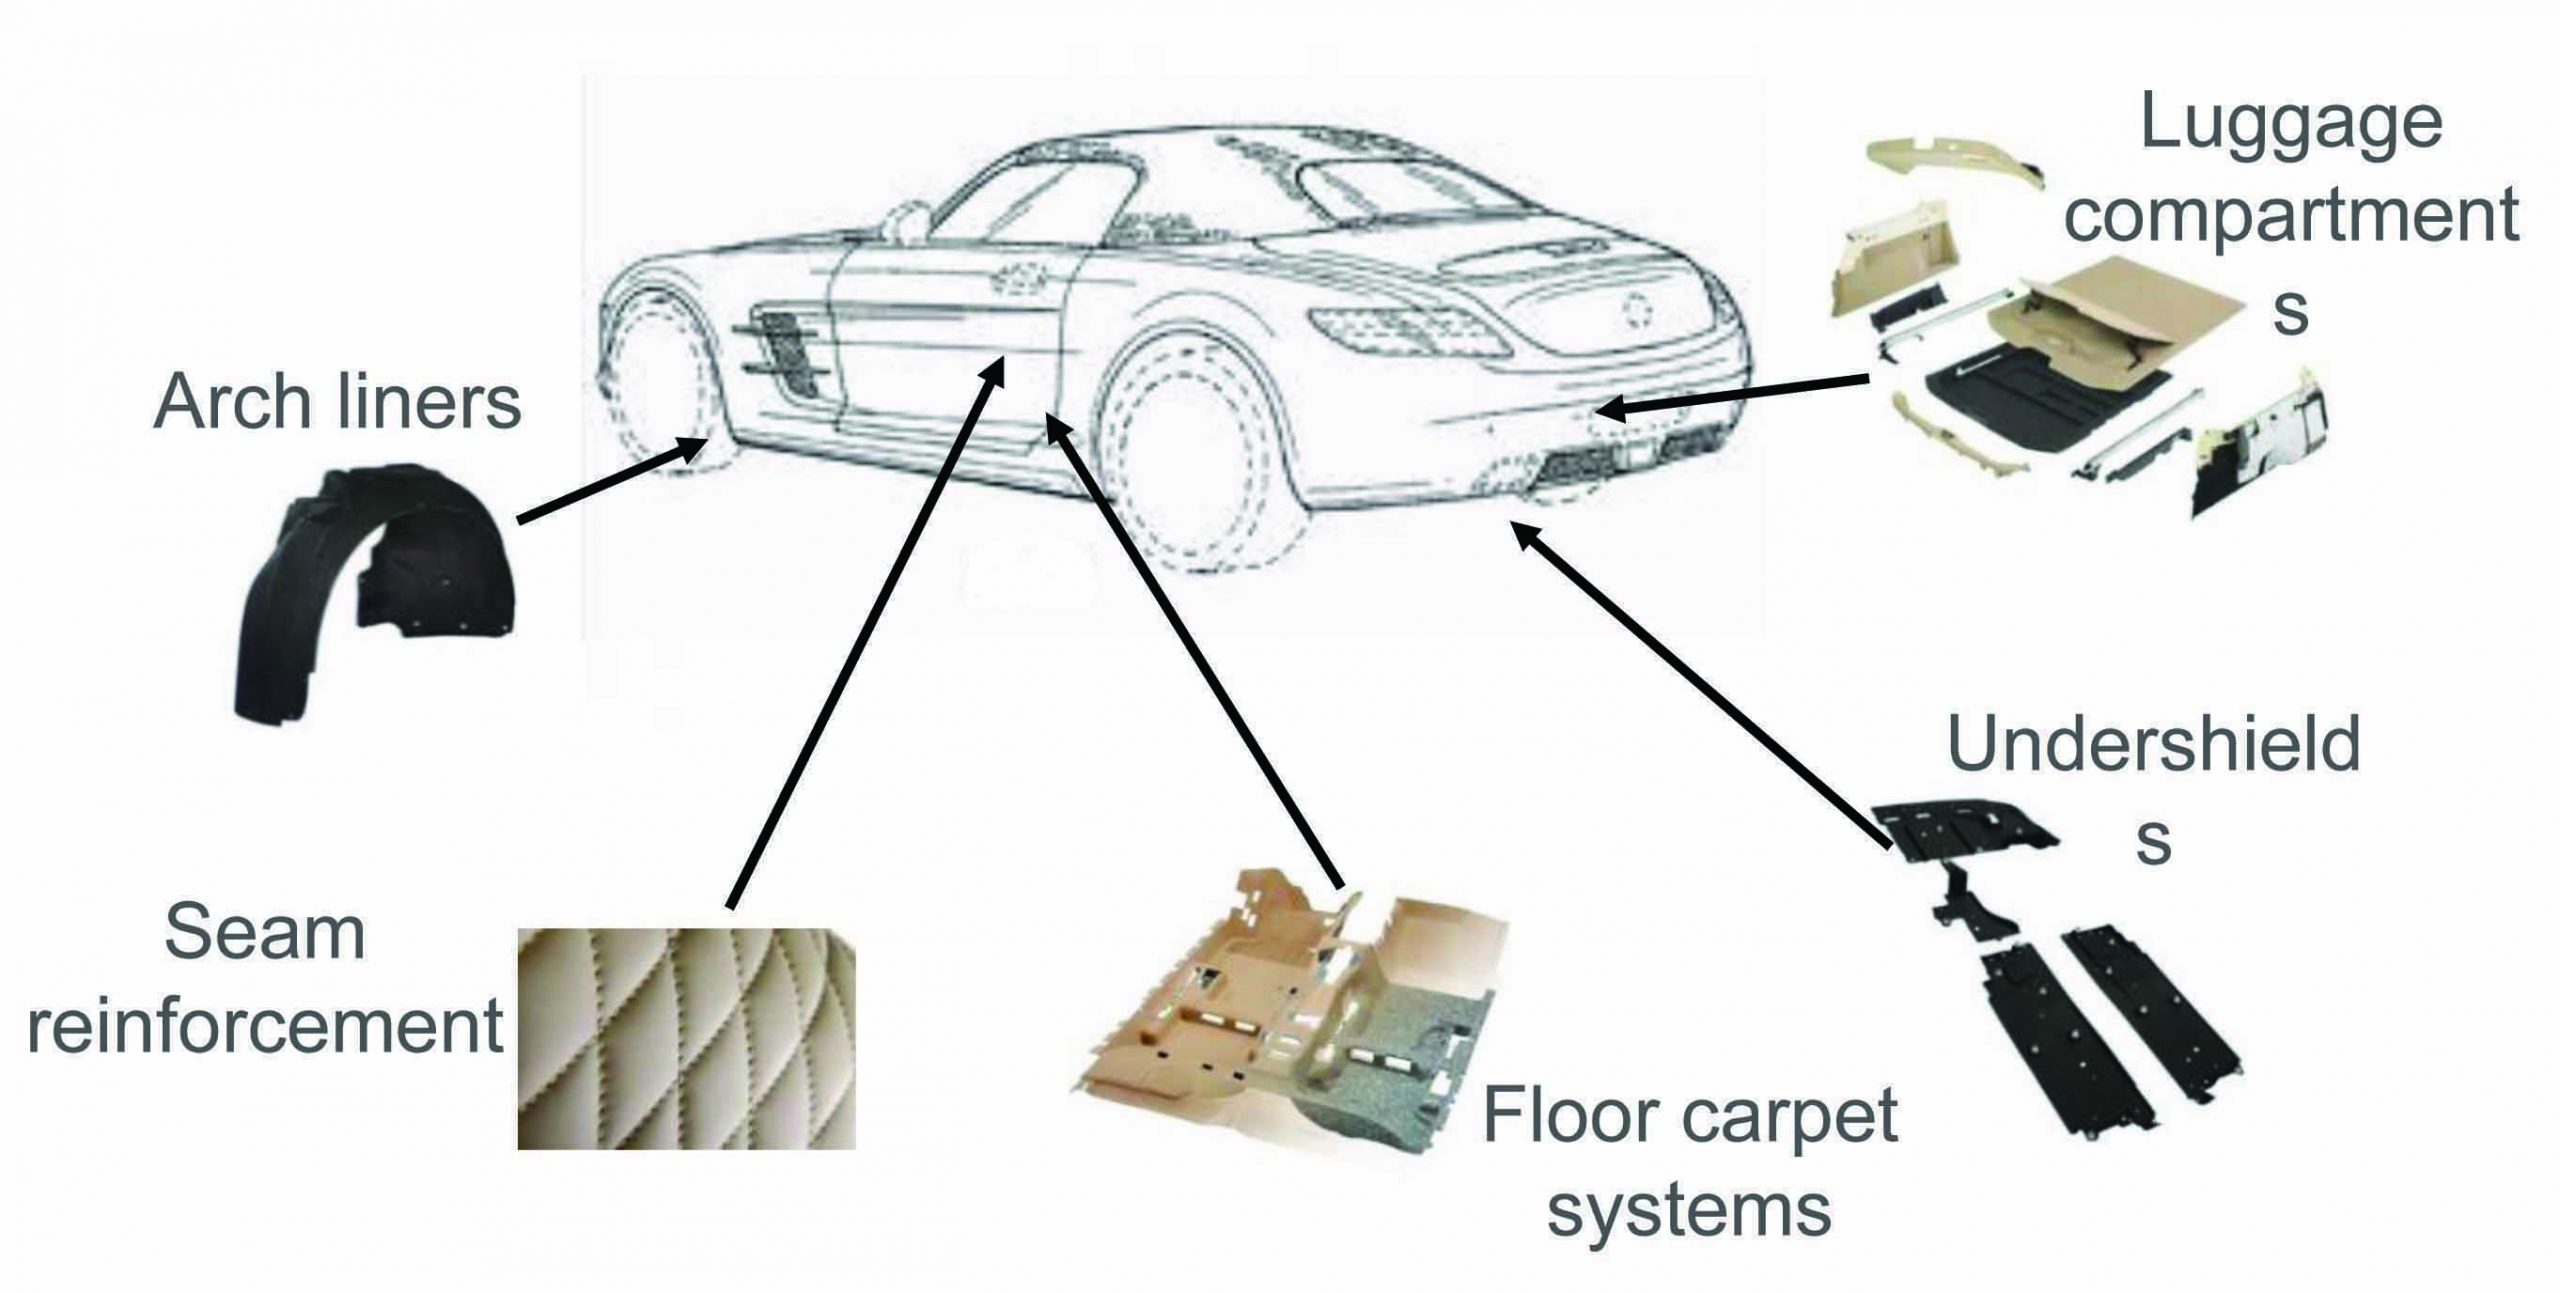 PP fiber applications in the automotive market.